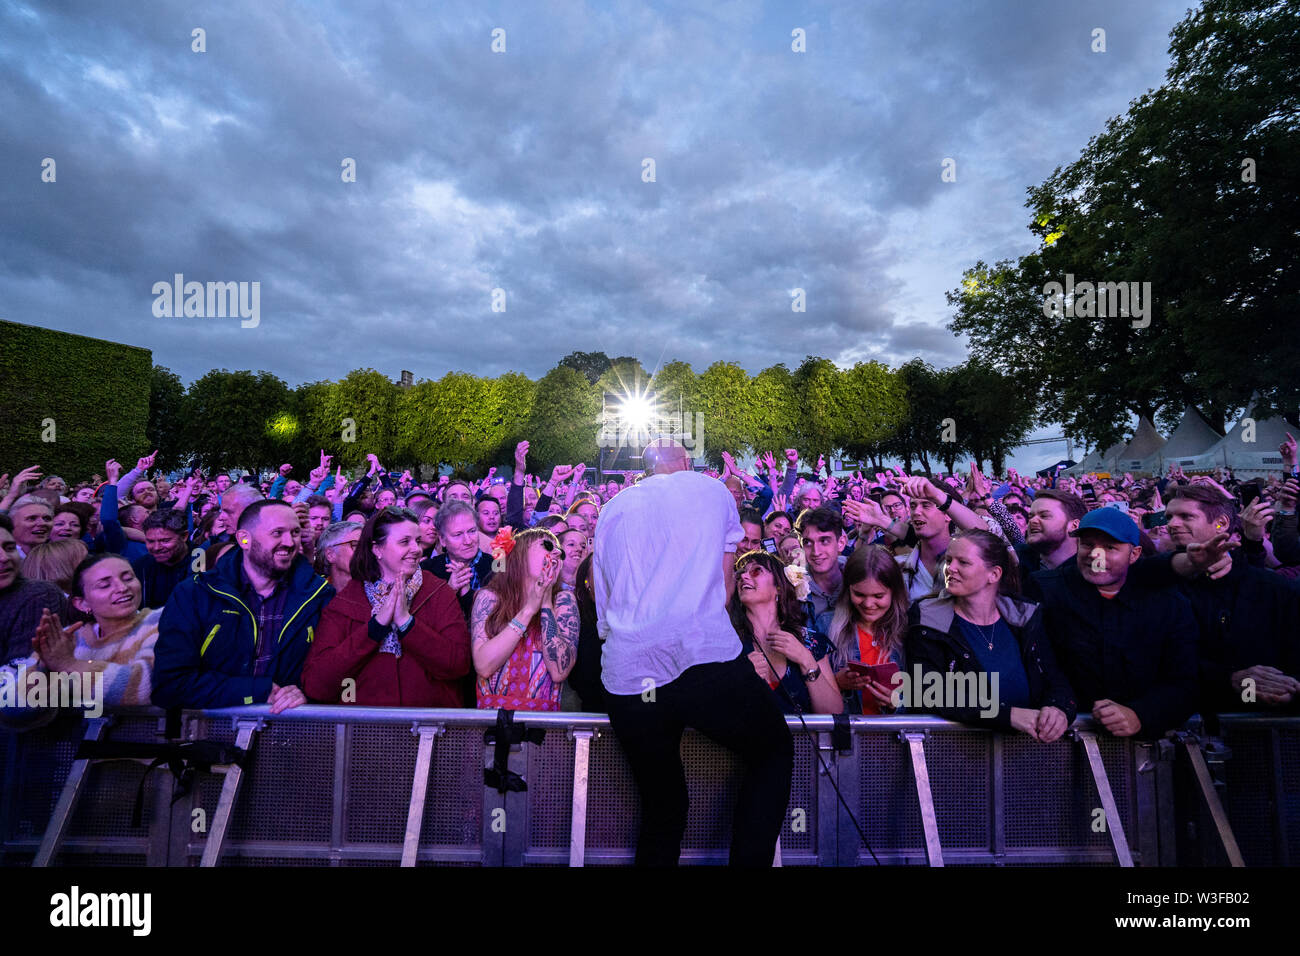 Bergen, Norway - June 13th, 2019. The Norwegian rock Madrugada performs a live concert during the Norwegian music festival Bergenfest 2019 in Bergen. Here singer and songwriter Sivert Høyem is seen among the festival goers. (Photo credit: Gonzales Photo - Jarle H. Moe). - Stock Image